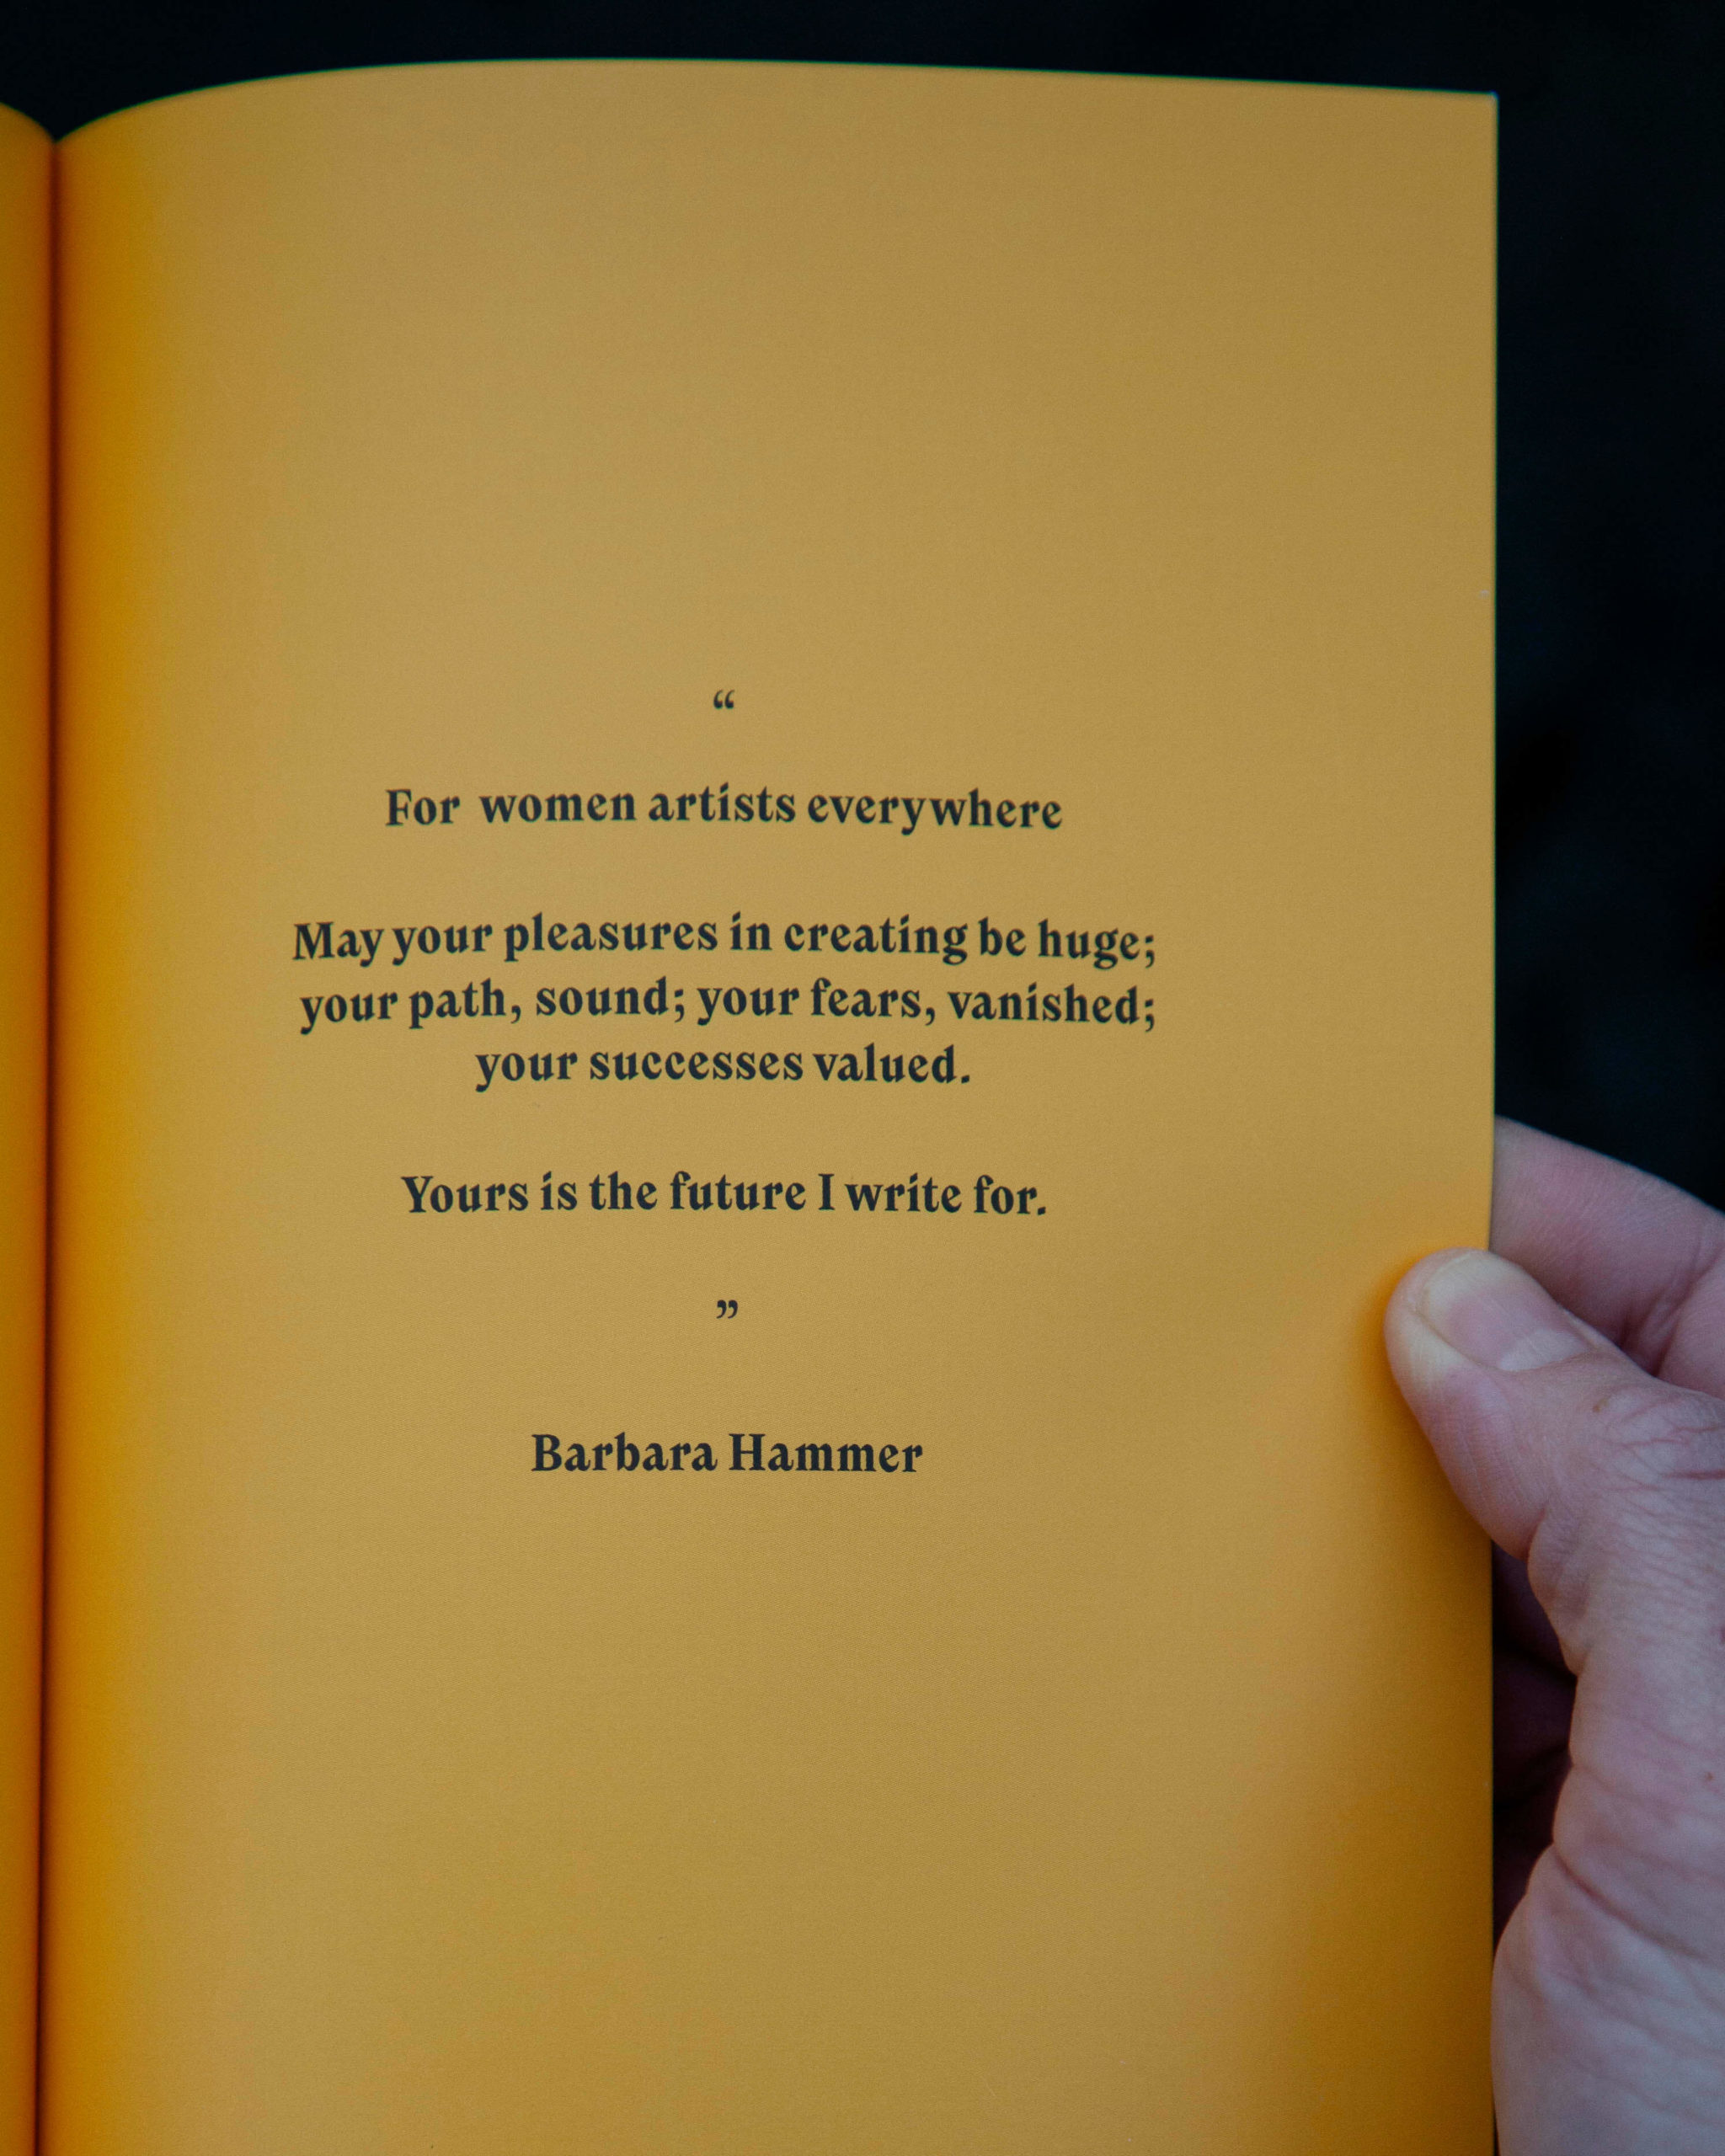 A yellow page with a quote by Barbara Hammer